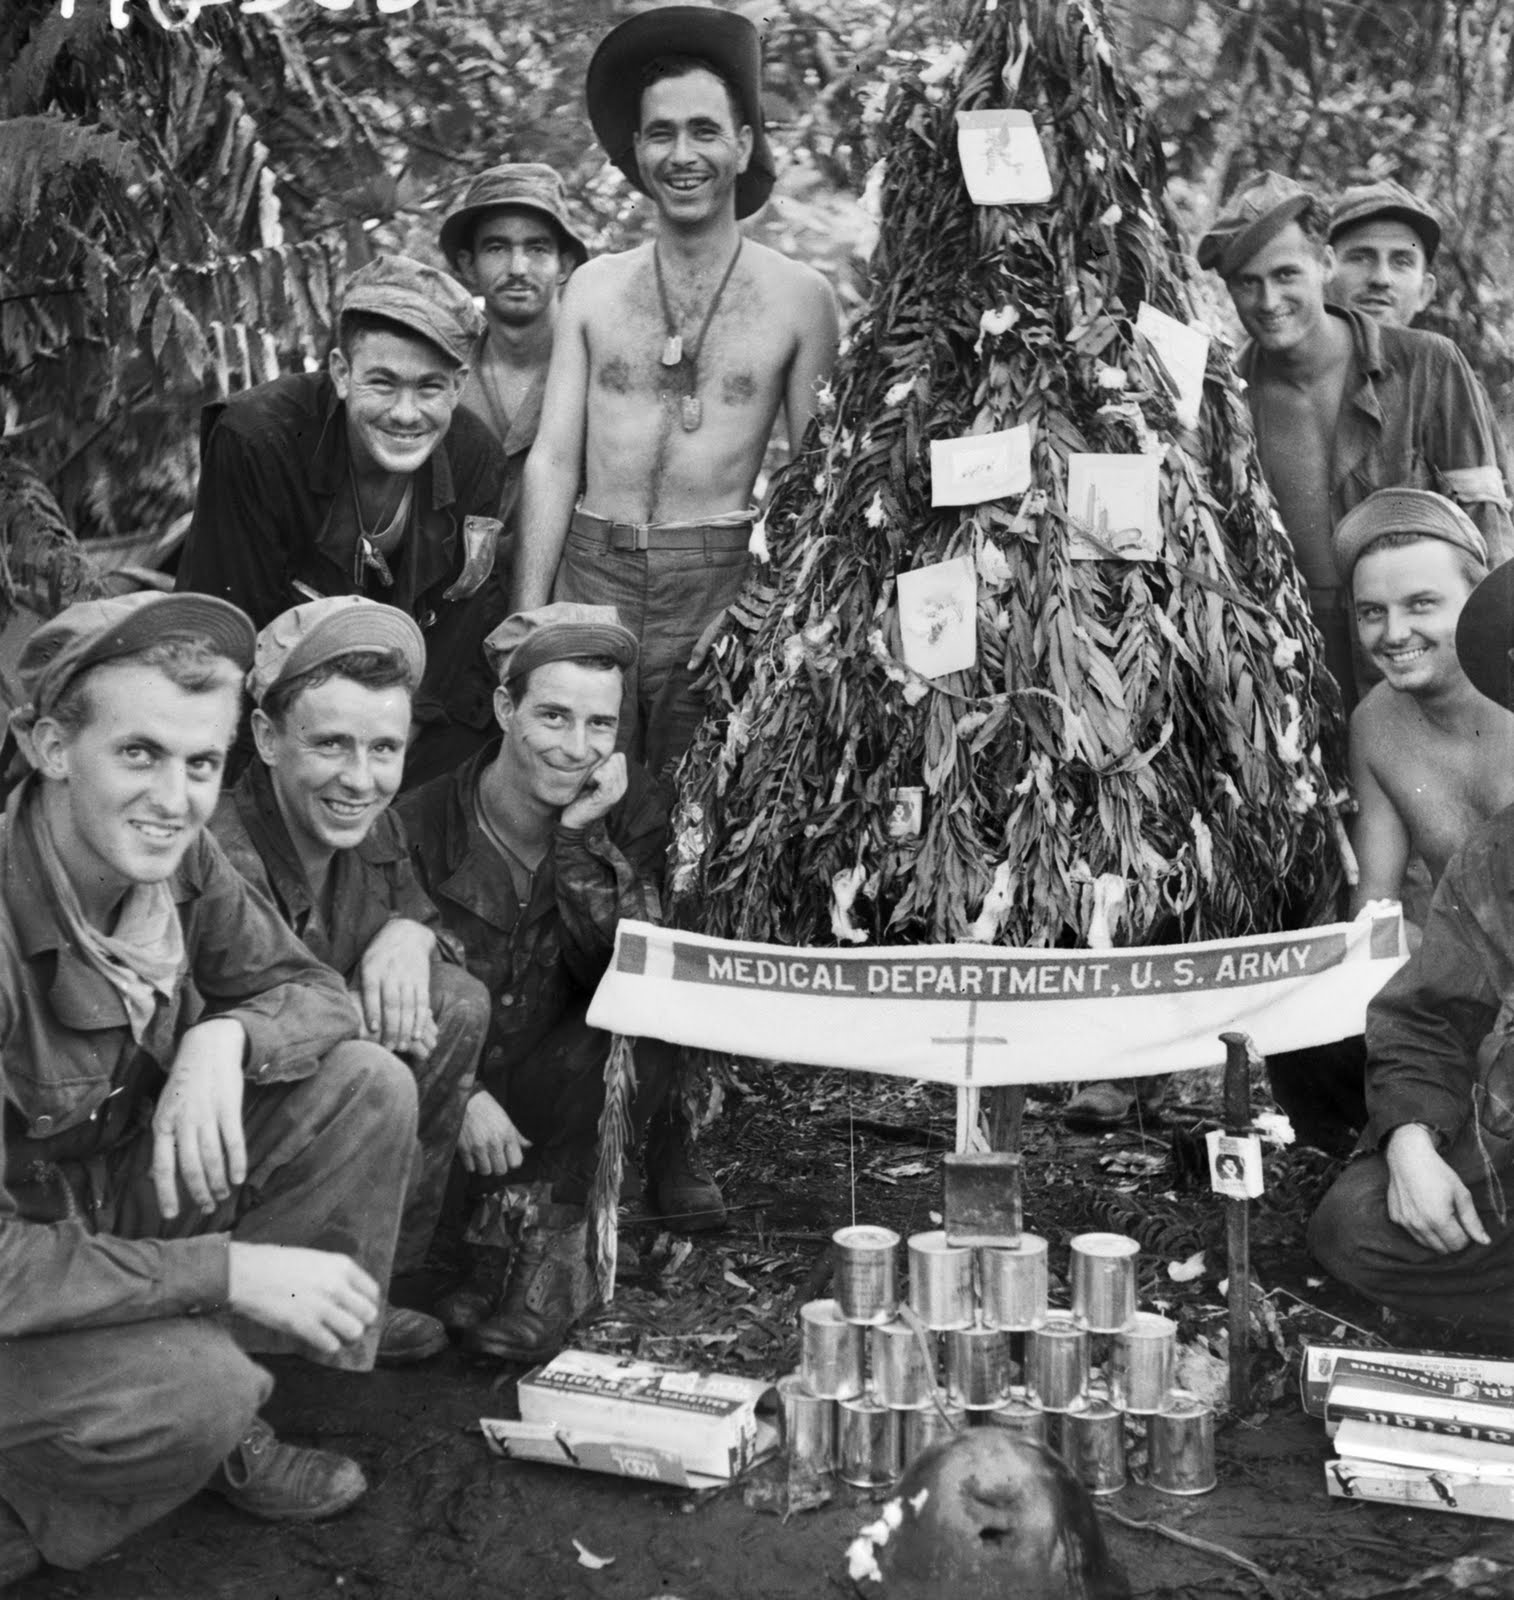 wwii soldiers decorating a palm tree for christmas - Christmas In Black And White